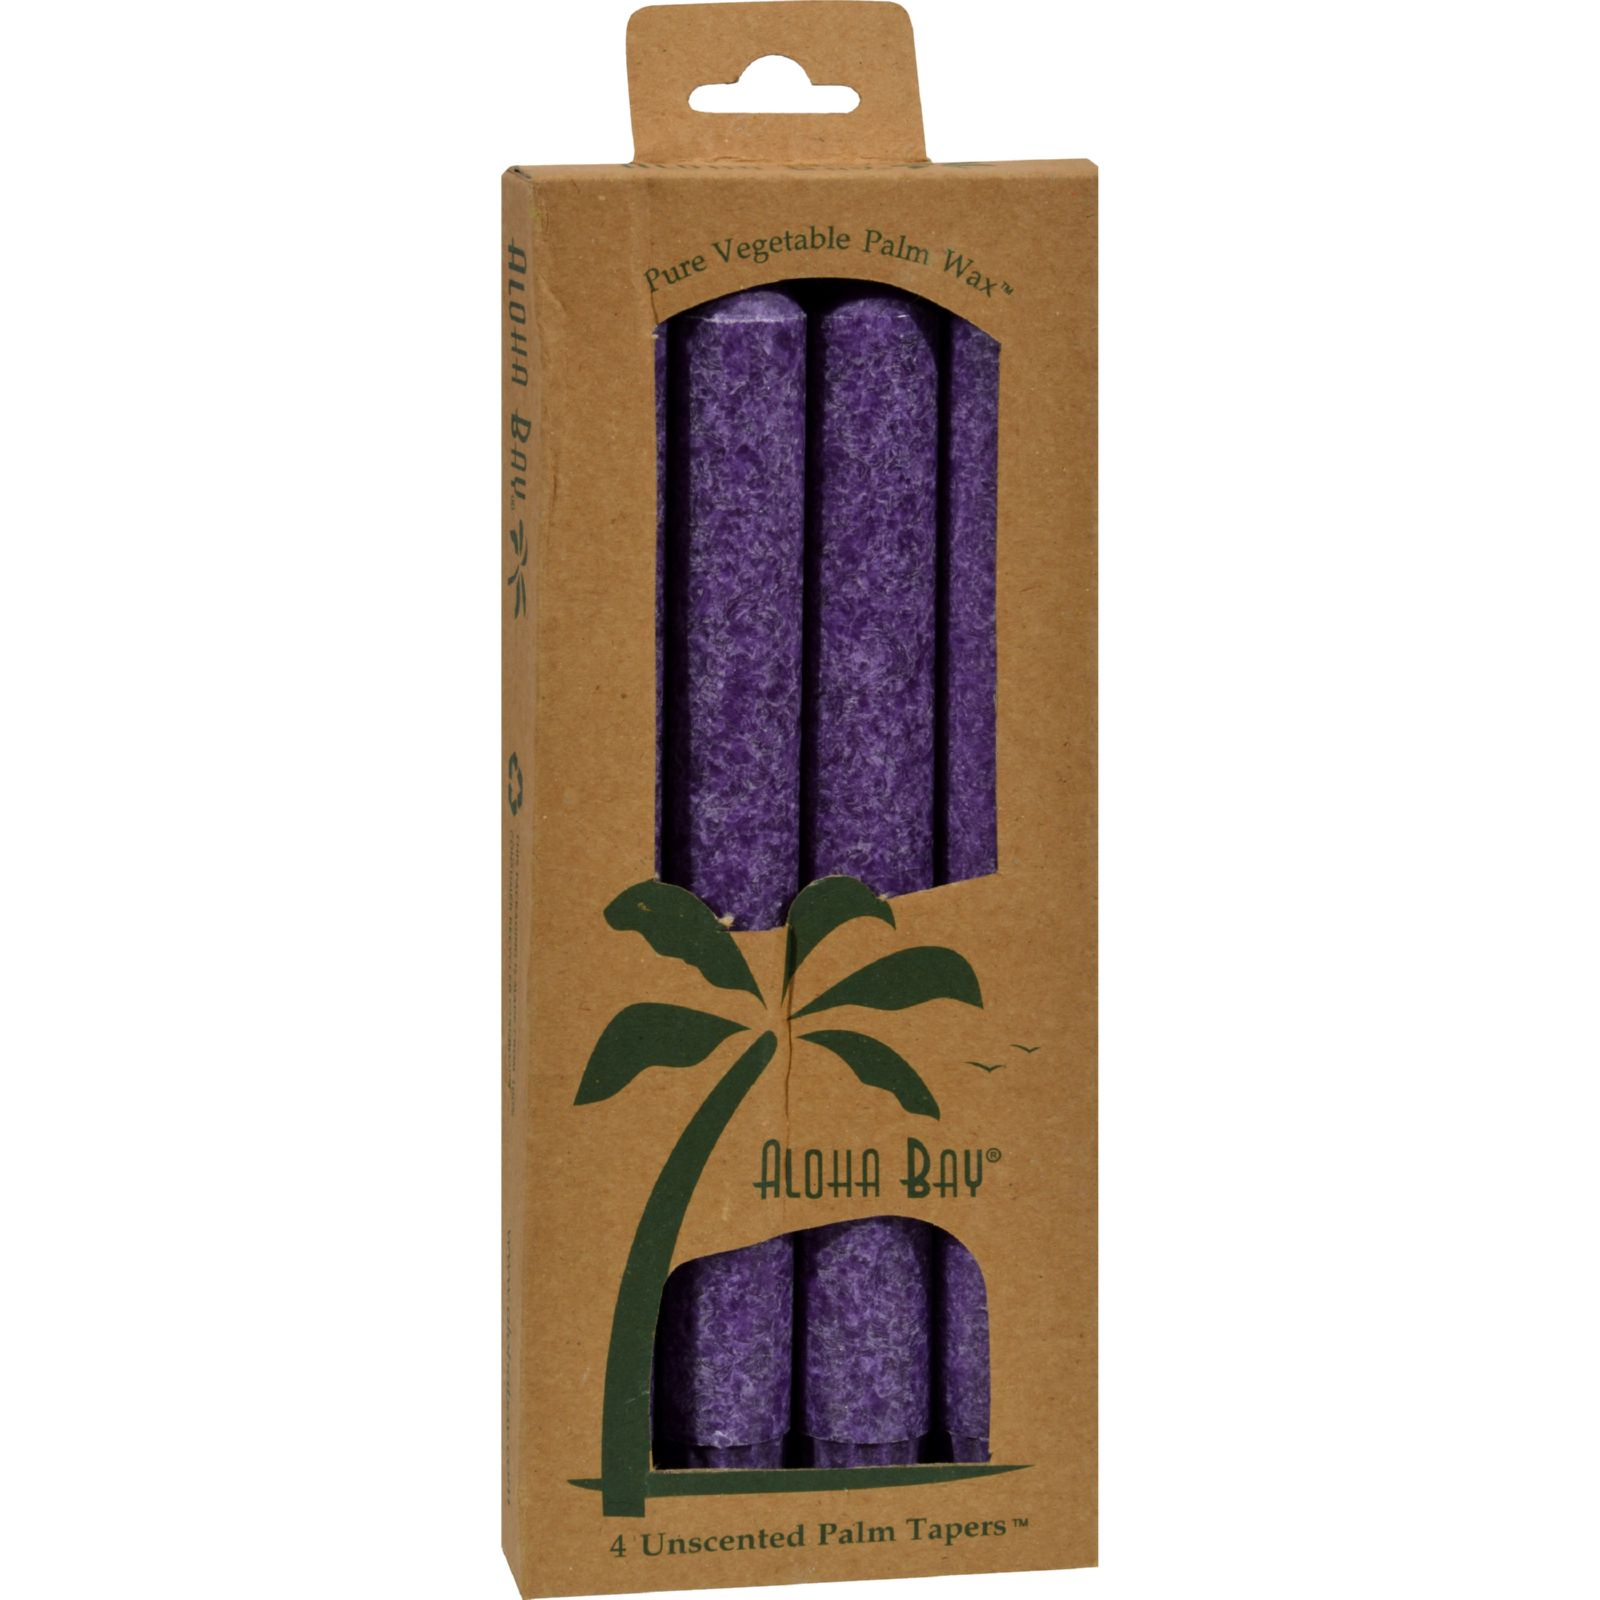 Aloha Bay Palm Tapers Violet 9 Inch Candles, Unscented - 4 Ea, 3 Pack